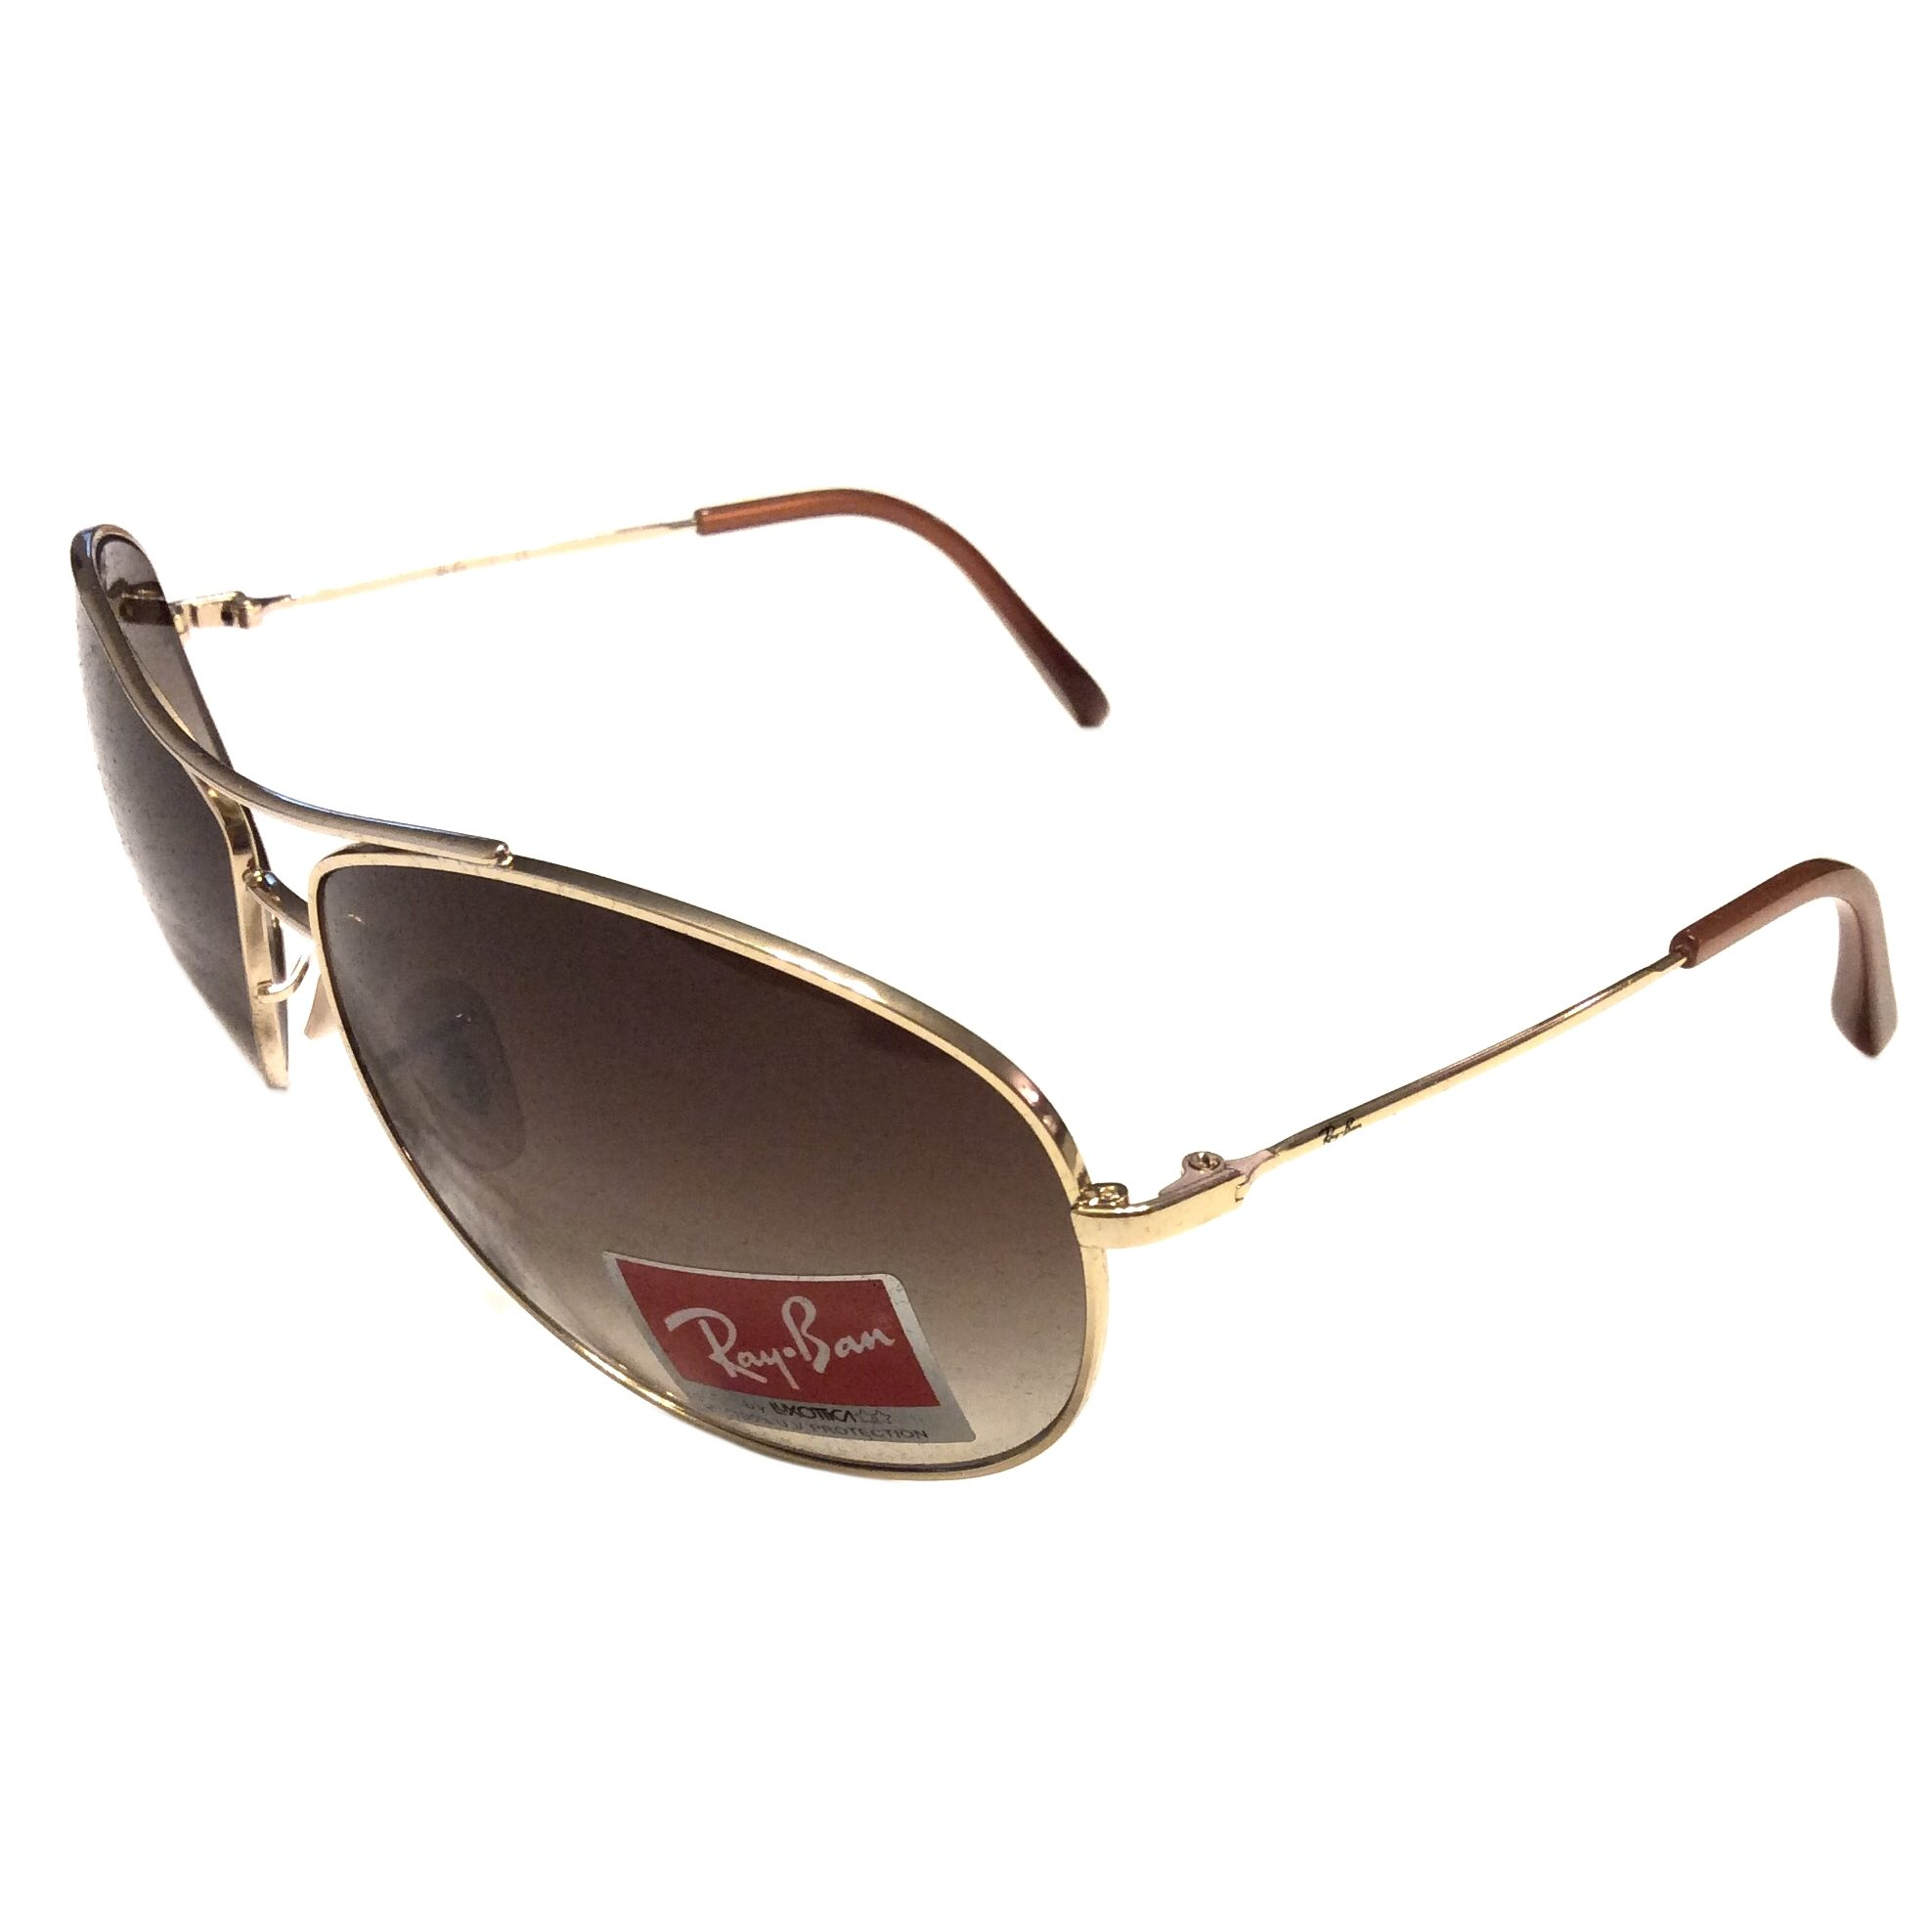 Ray-Ban Aviator Sunglasses - Gold Frame - Brown Gradient RB3454L 001/13